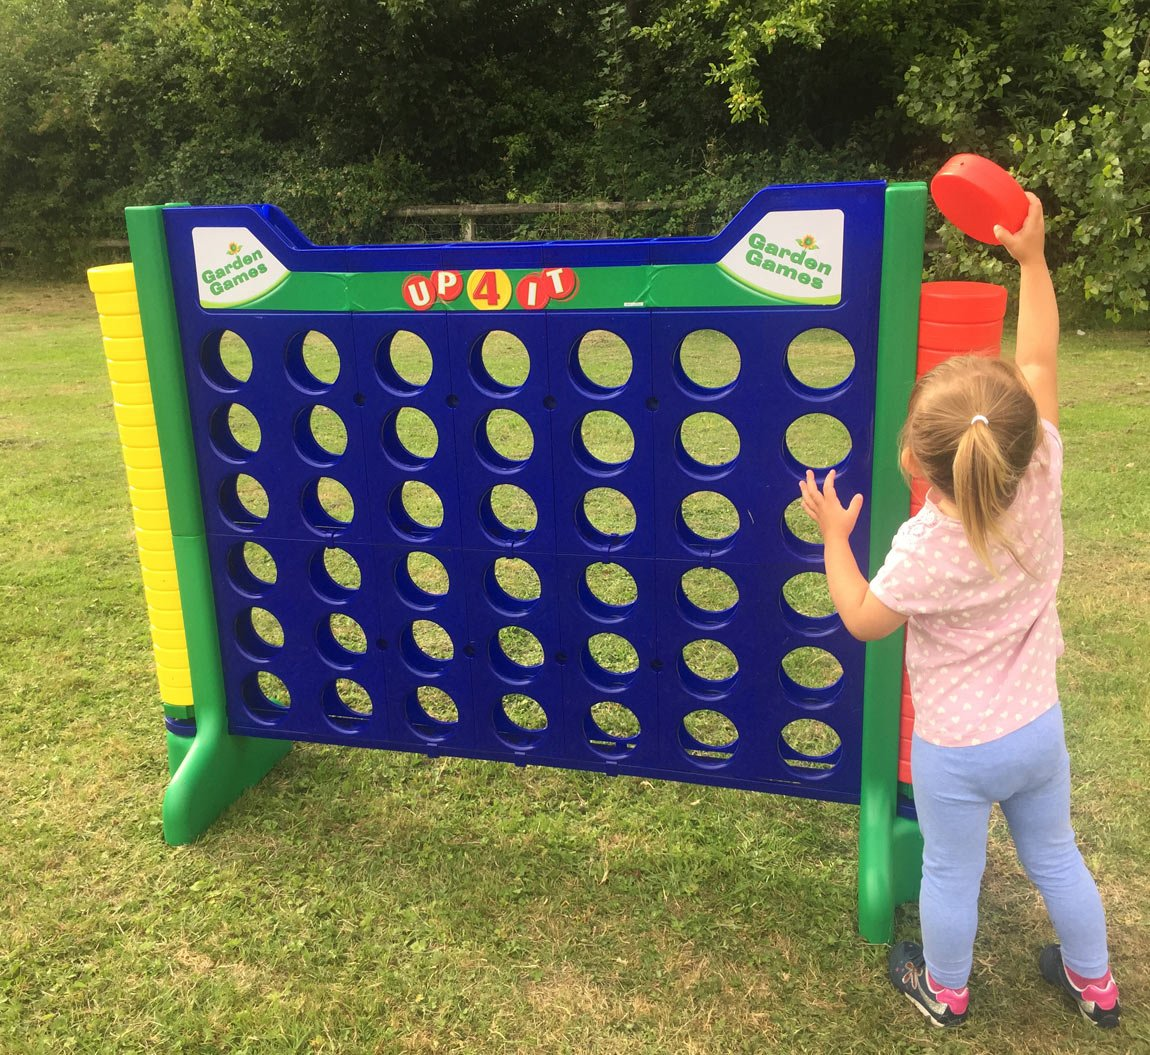 Garden Games Giant Up 4 It   Genuinely Giant Connect 4 Counters Game 110  Centimetres Tall X 146 Centimetres Wide: Mark: Amazon.co.uk: Toys U0026 Games